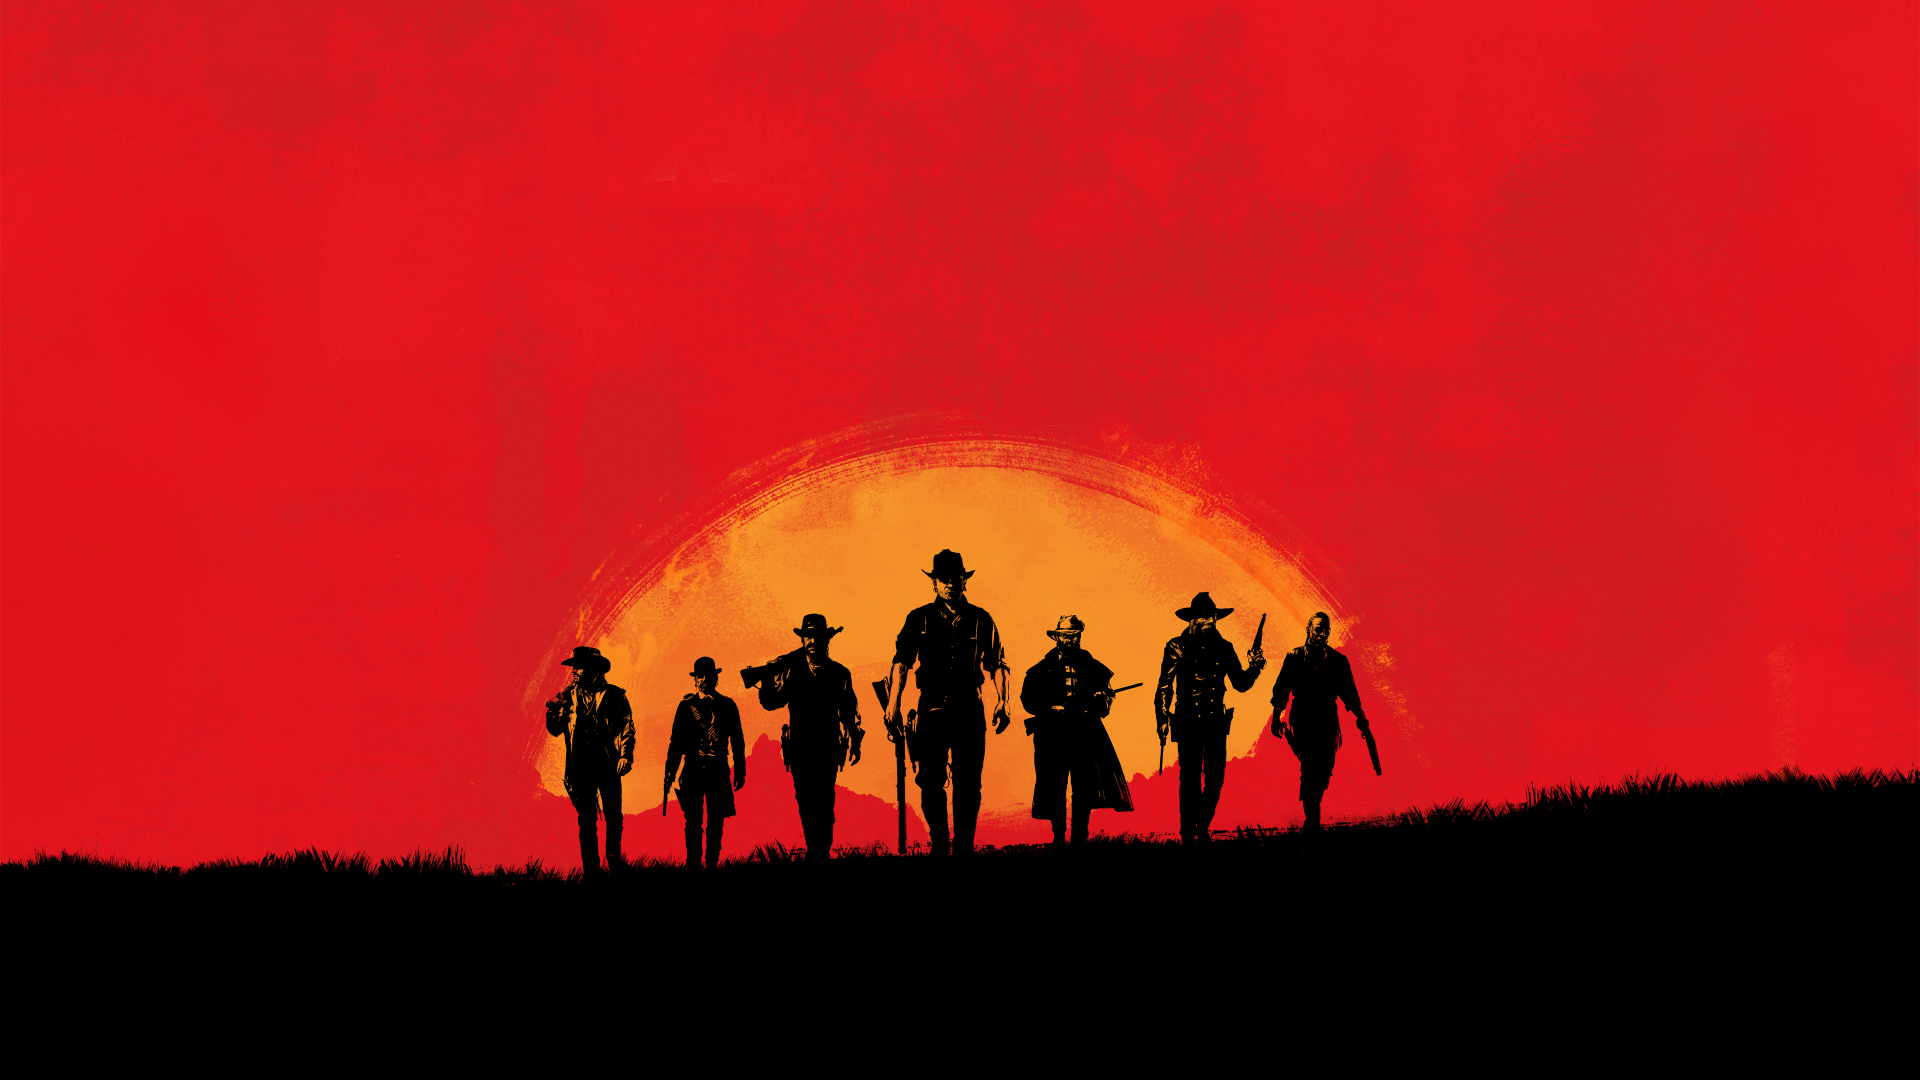 196 Red Dead Redemption 2 Hd Wallpapers Background Images